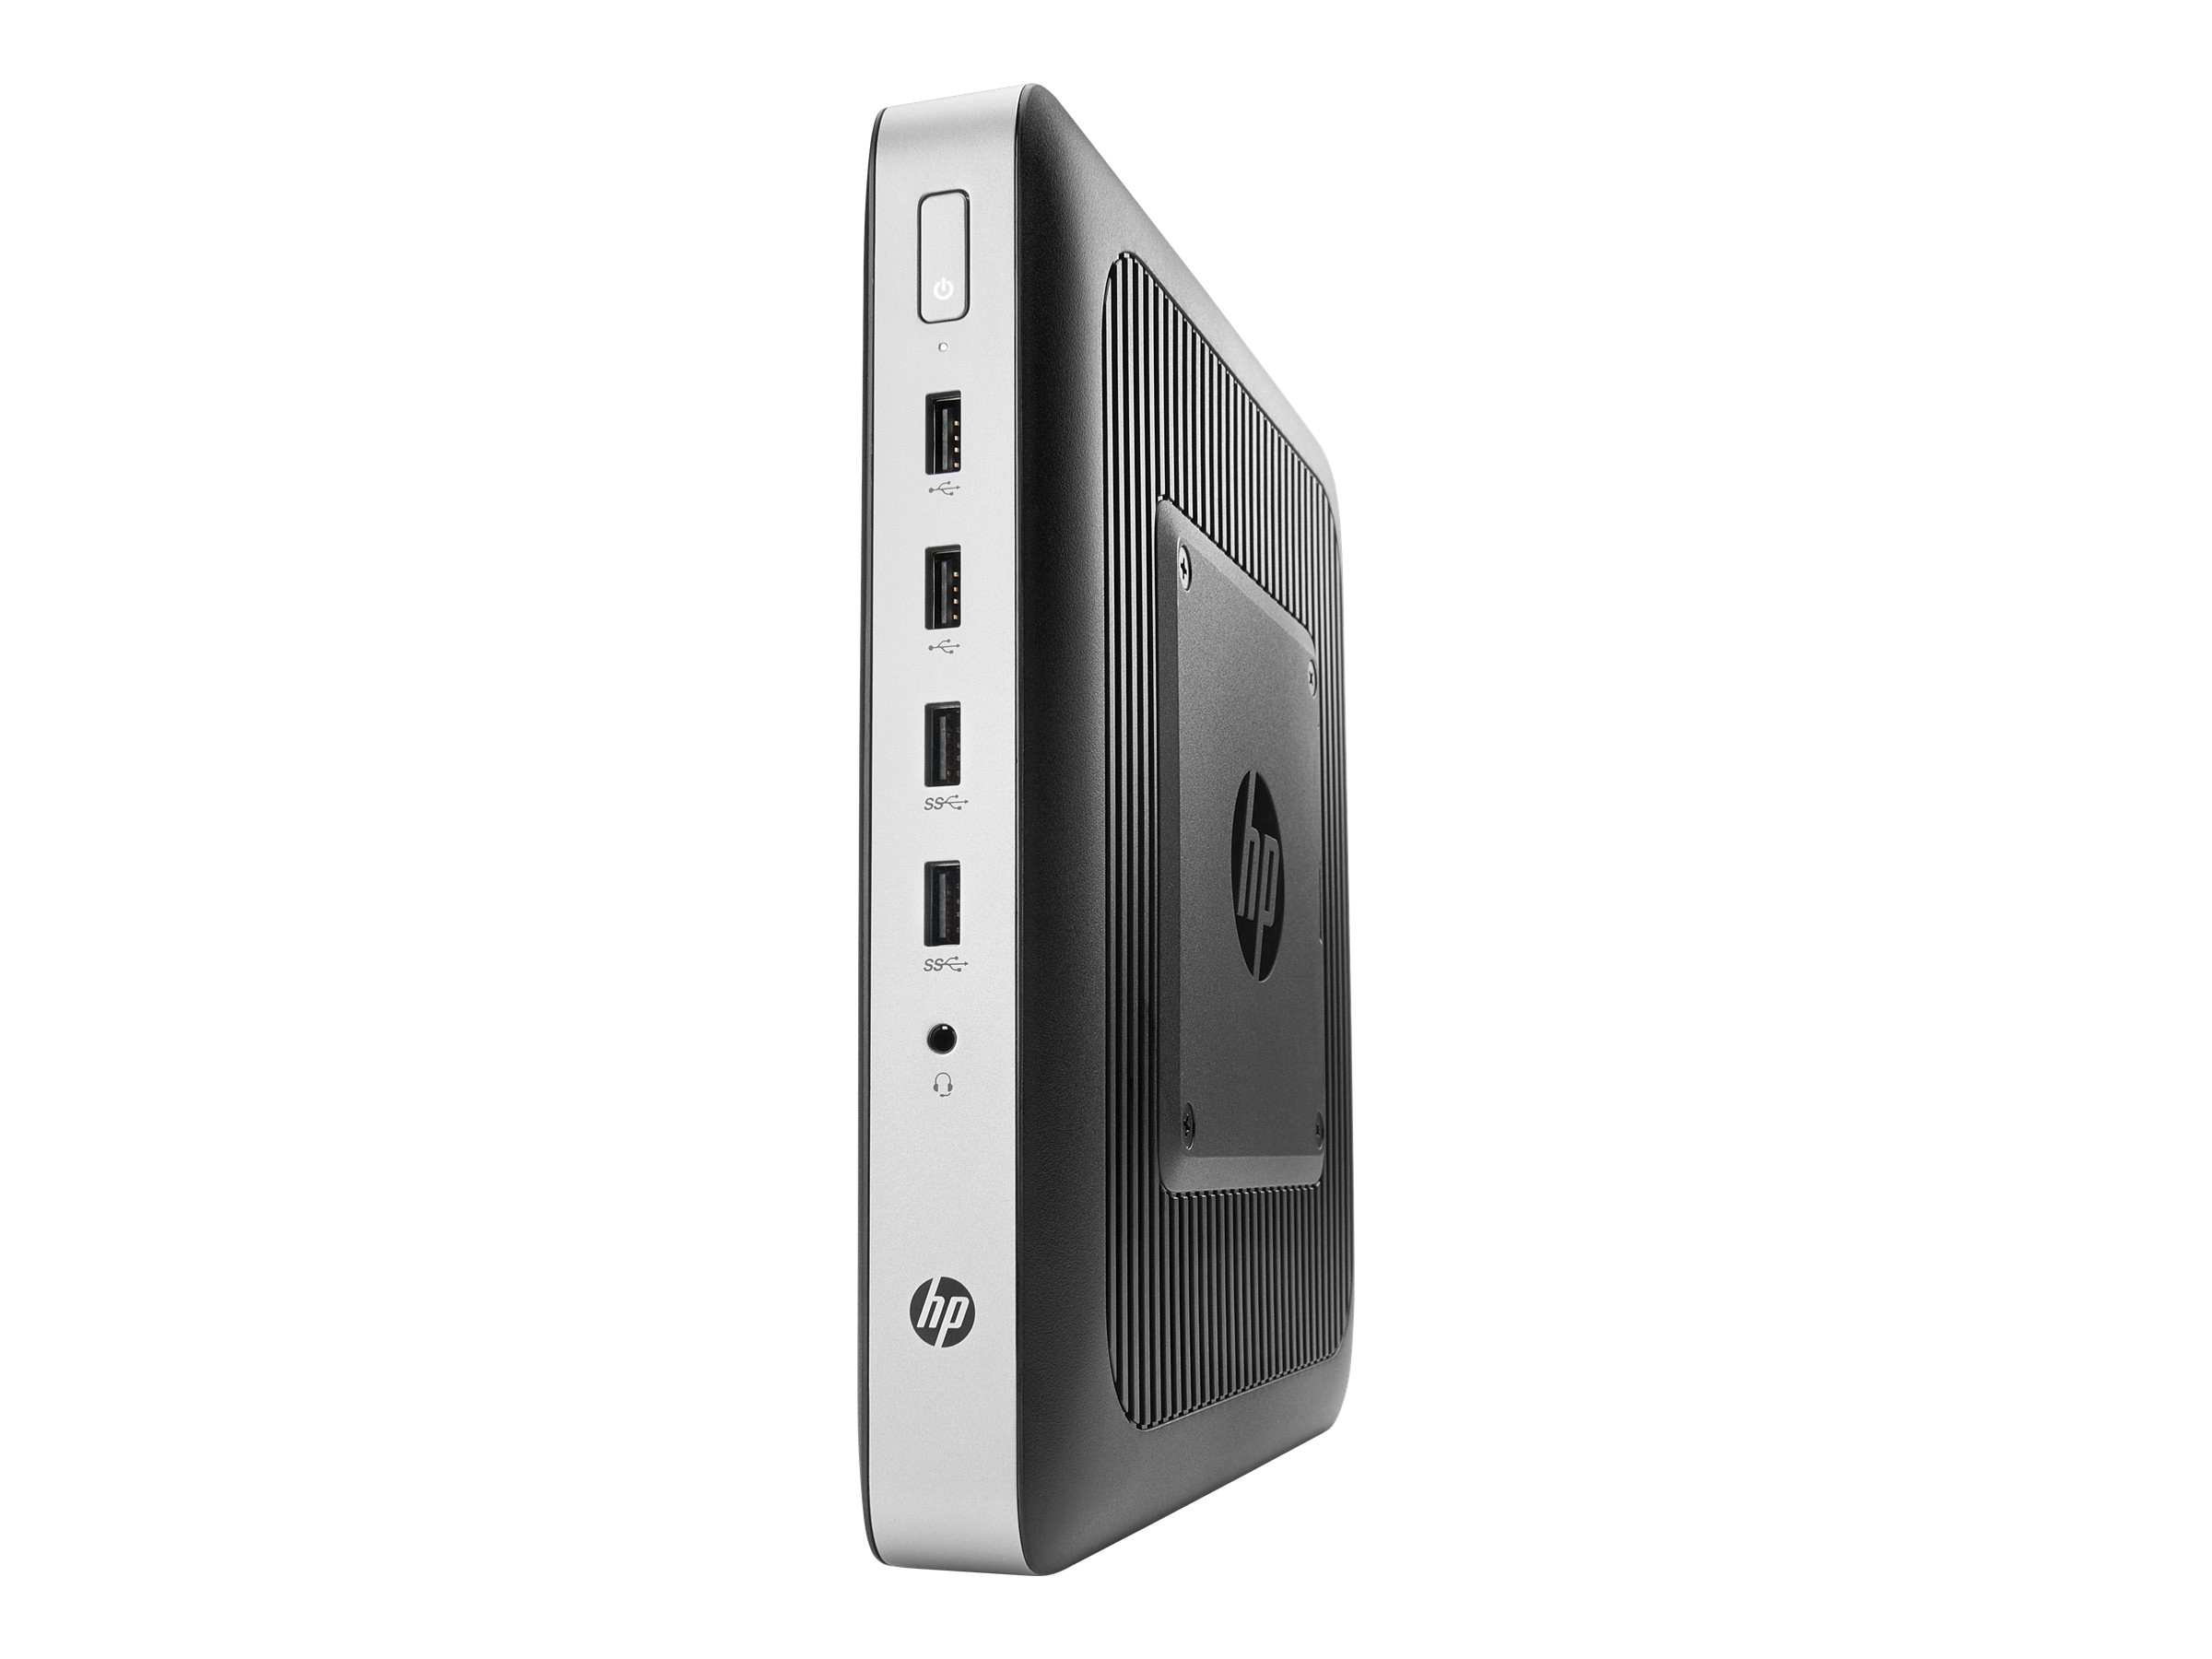 HP t630 Thin Client AMD GX-420GI 2.0GHz 8GB 128GB Flash R6E GbE VGA W10 IoT